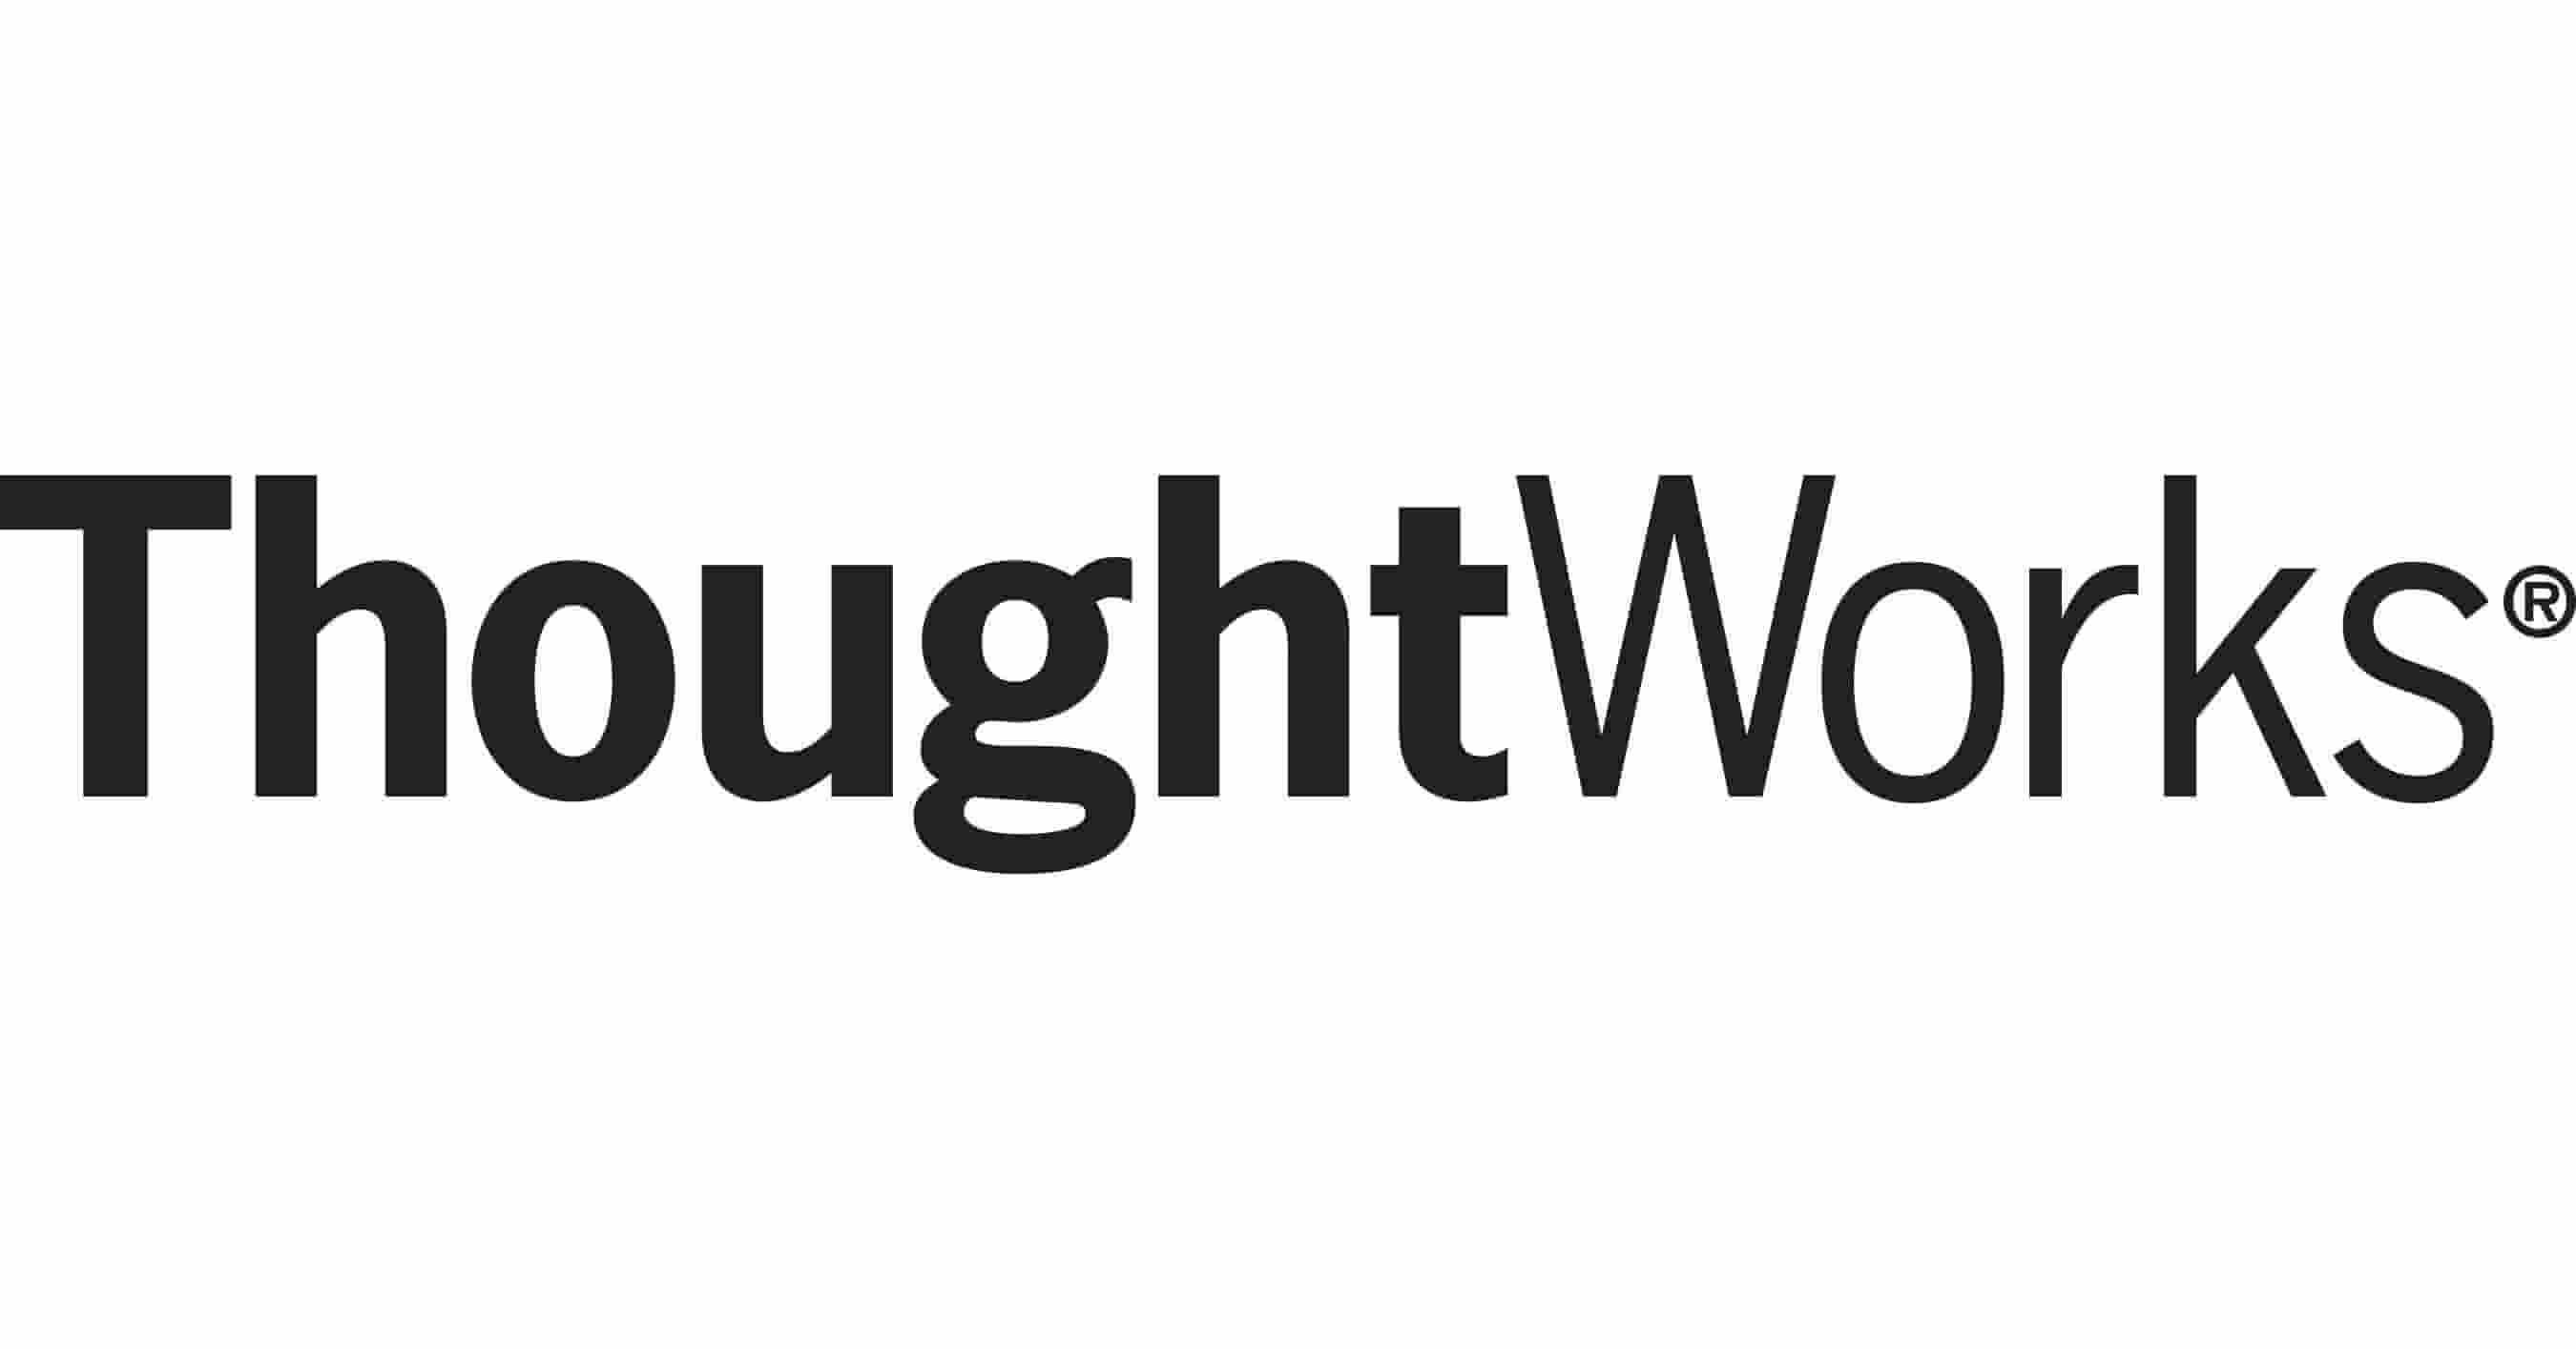 DATA ENGINEER position at Thoughtworks